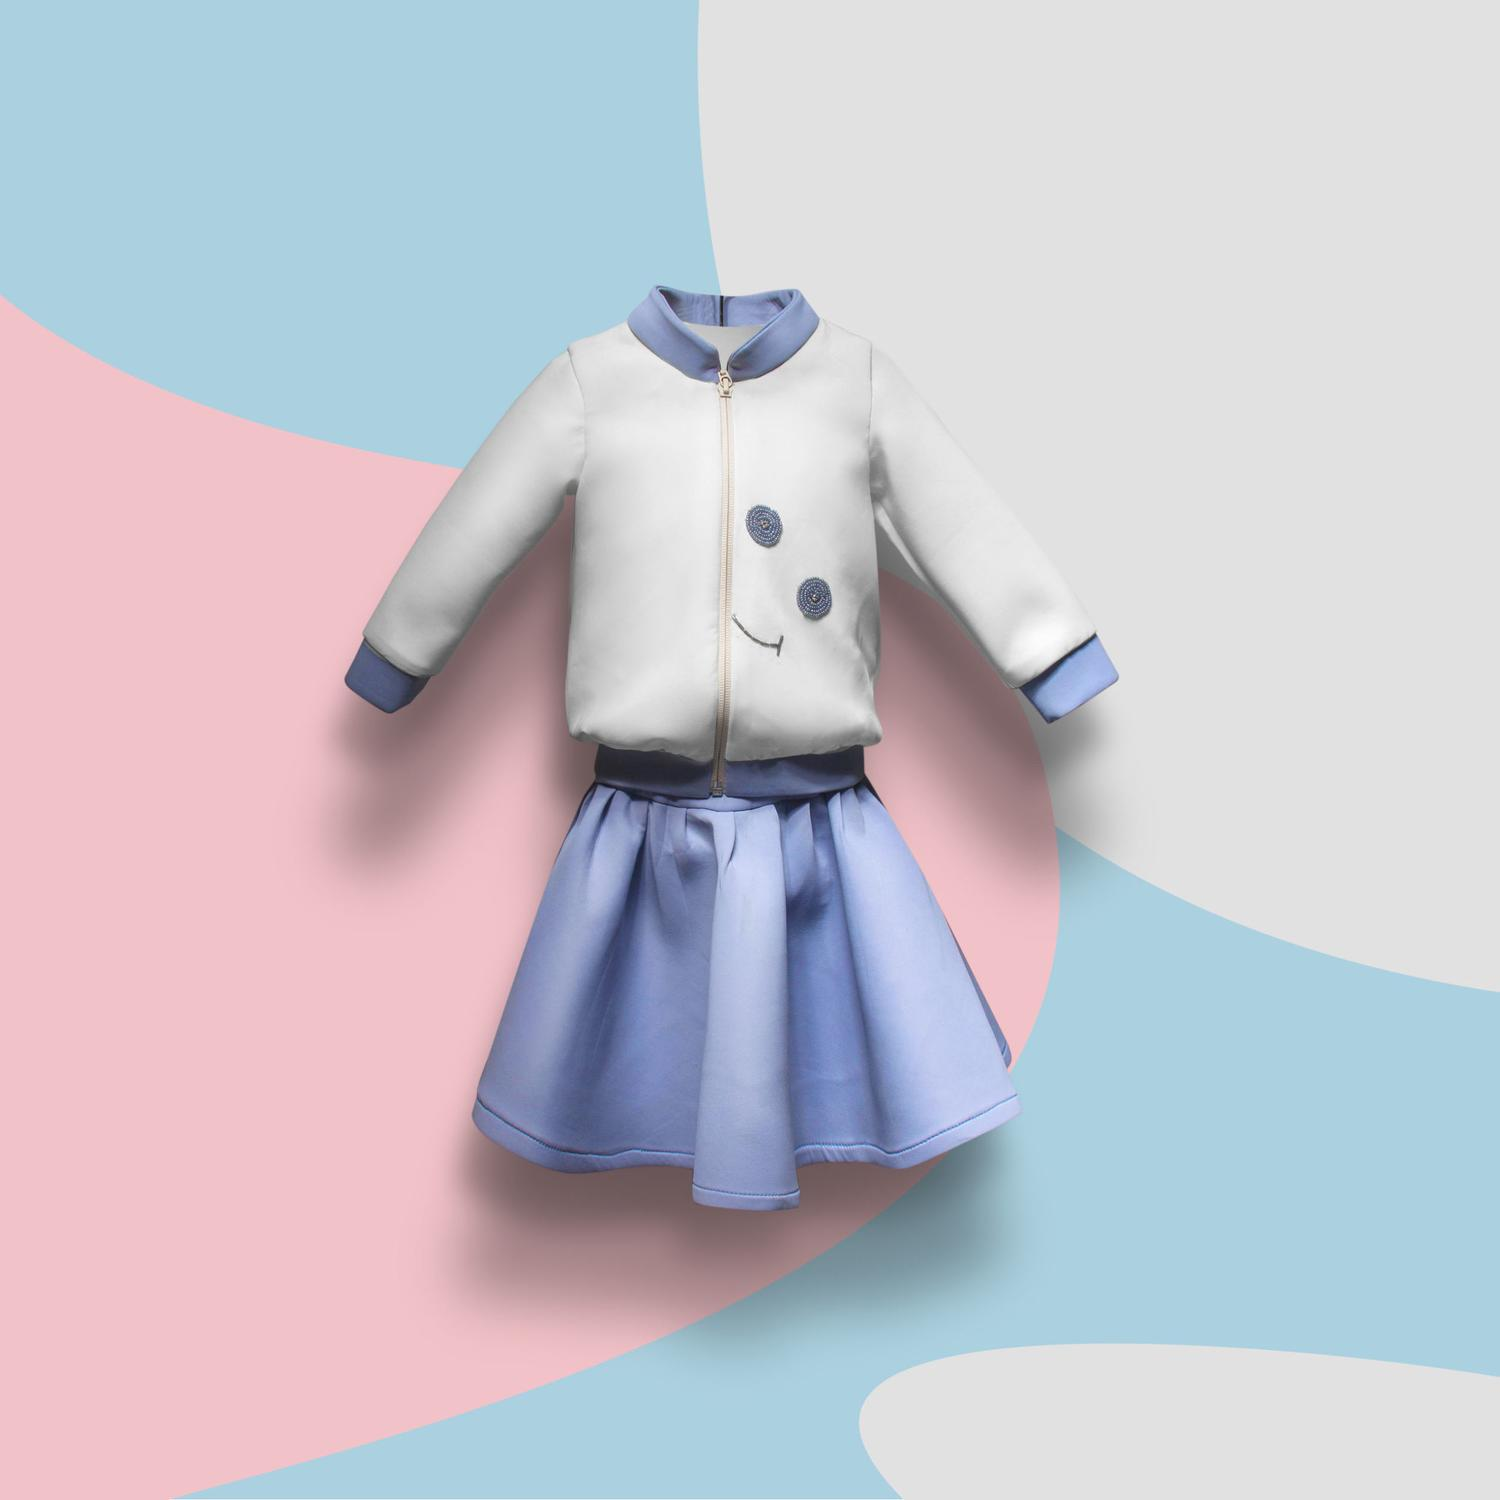 """Elvira Jude has a Children's Line for Those Stylish """"Mommy and Me"""" Moments"""